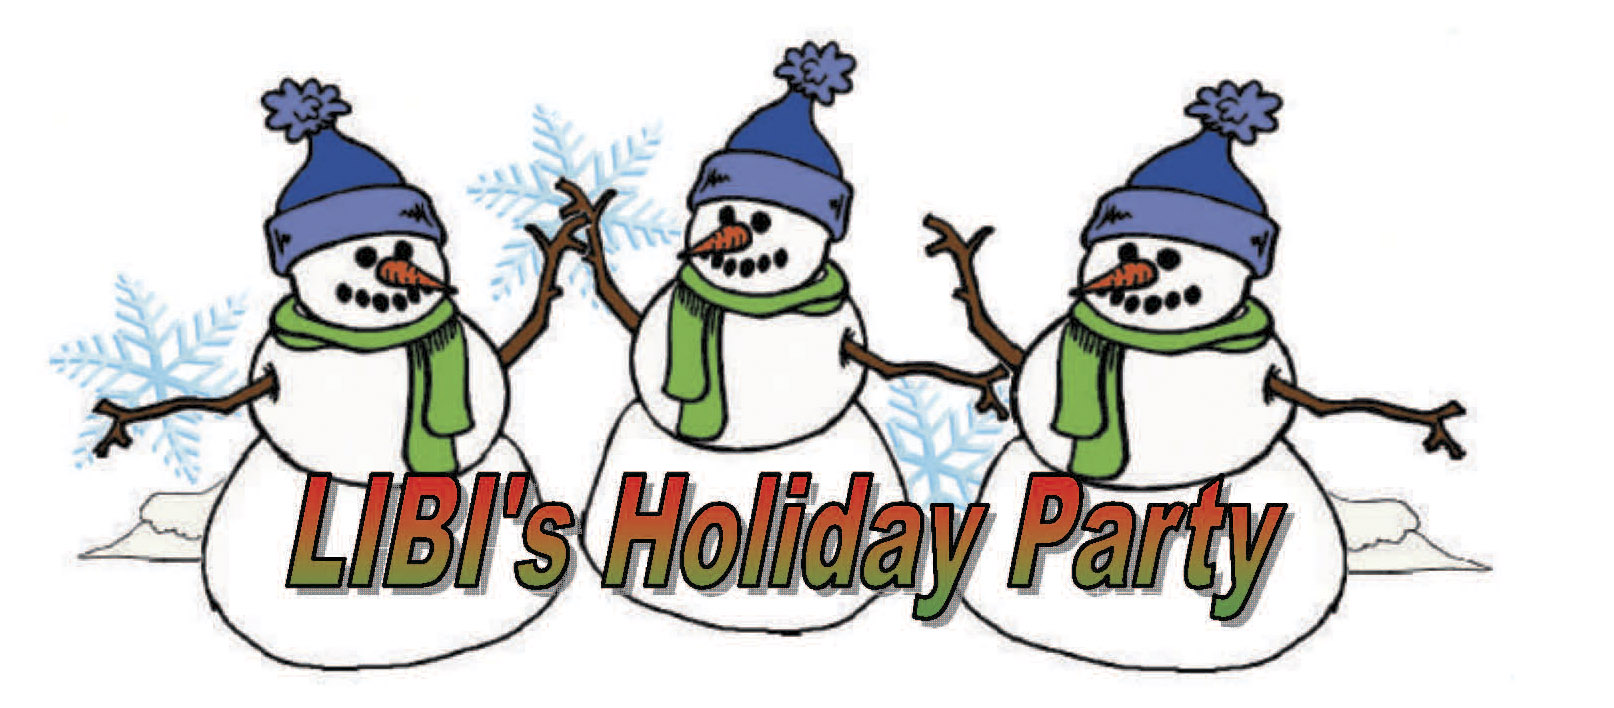 1614x708 Holiday Party Clipart 101 Clip Art